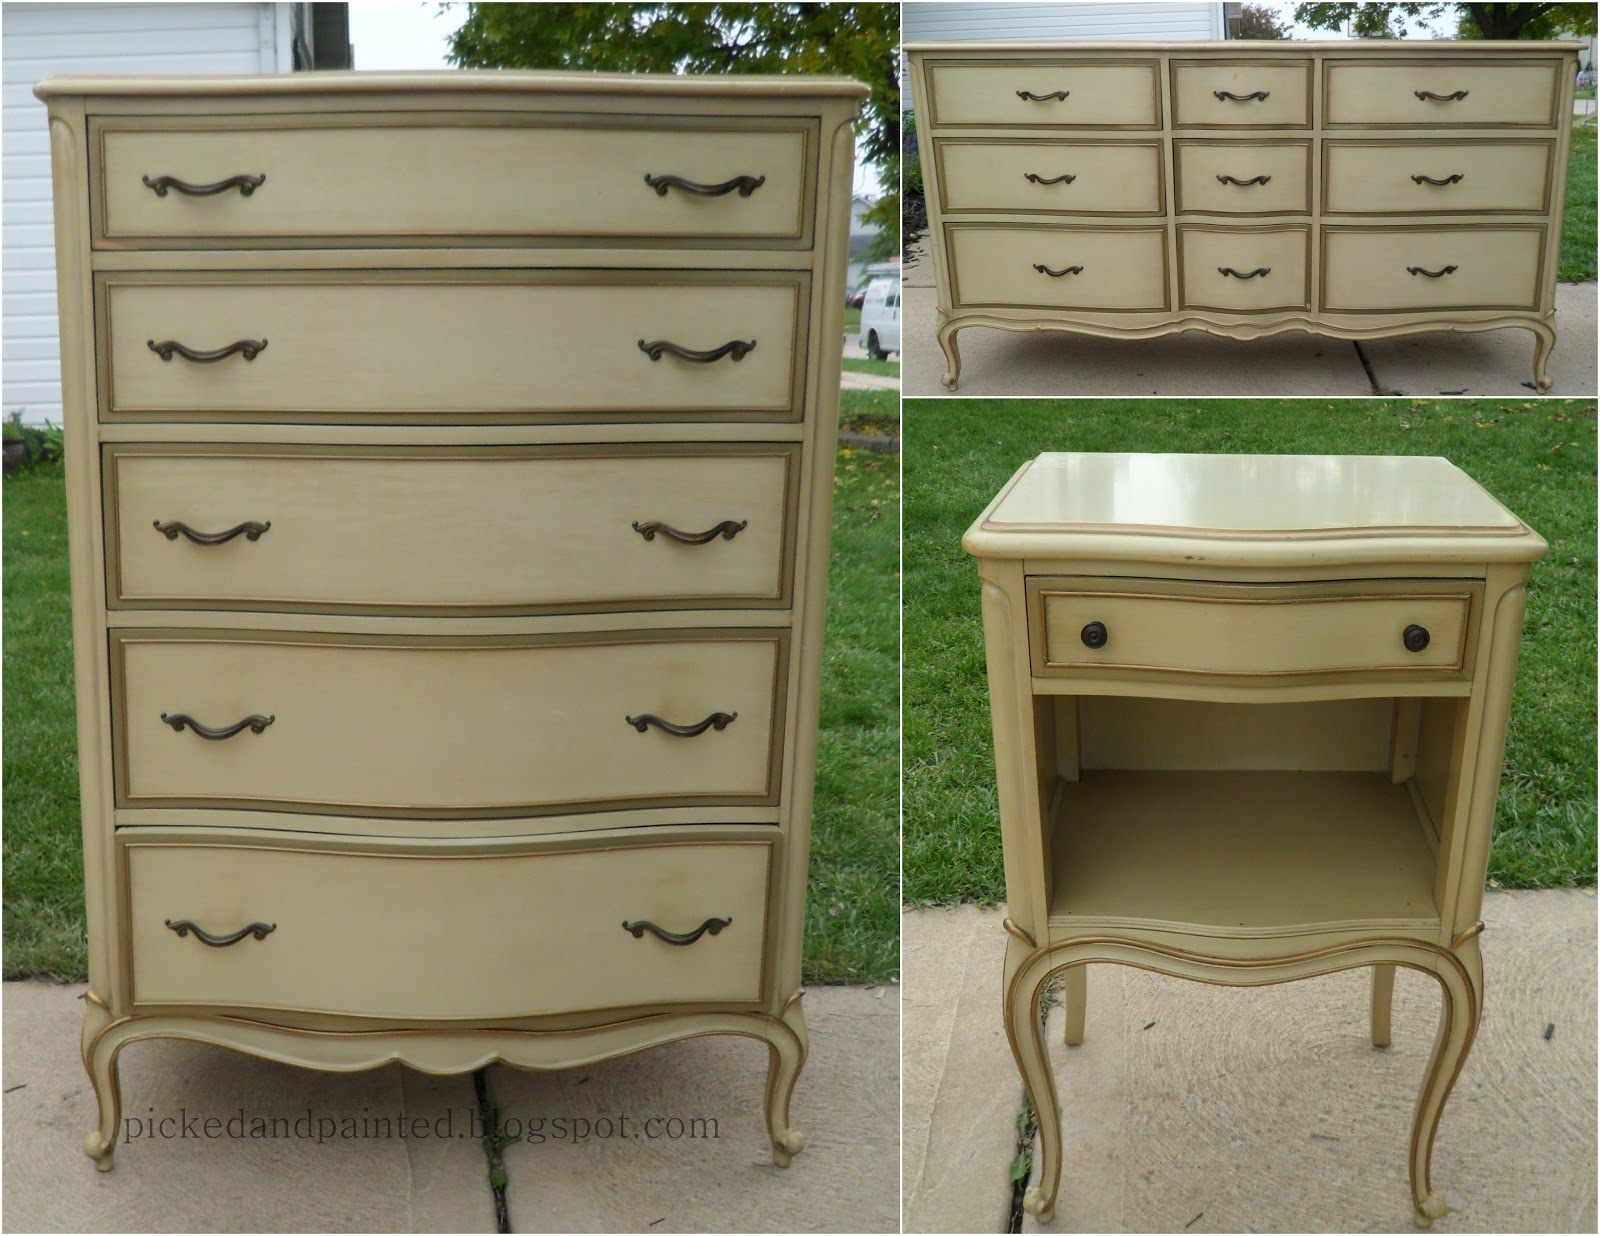 helen nichole designs french provincial dresser set